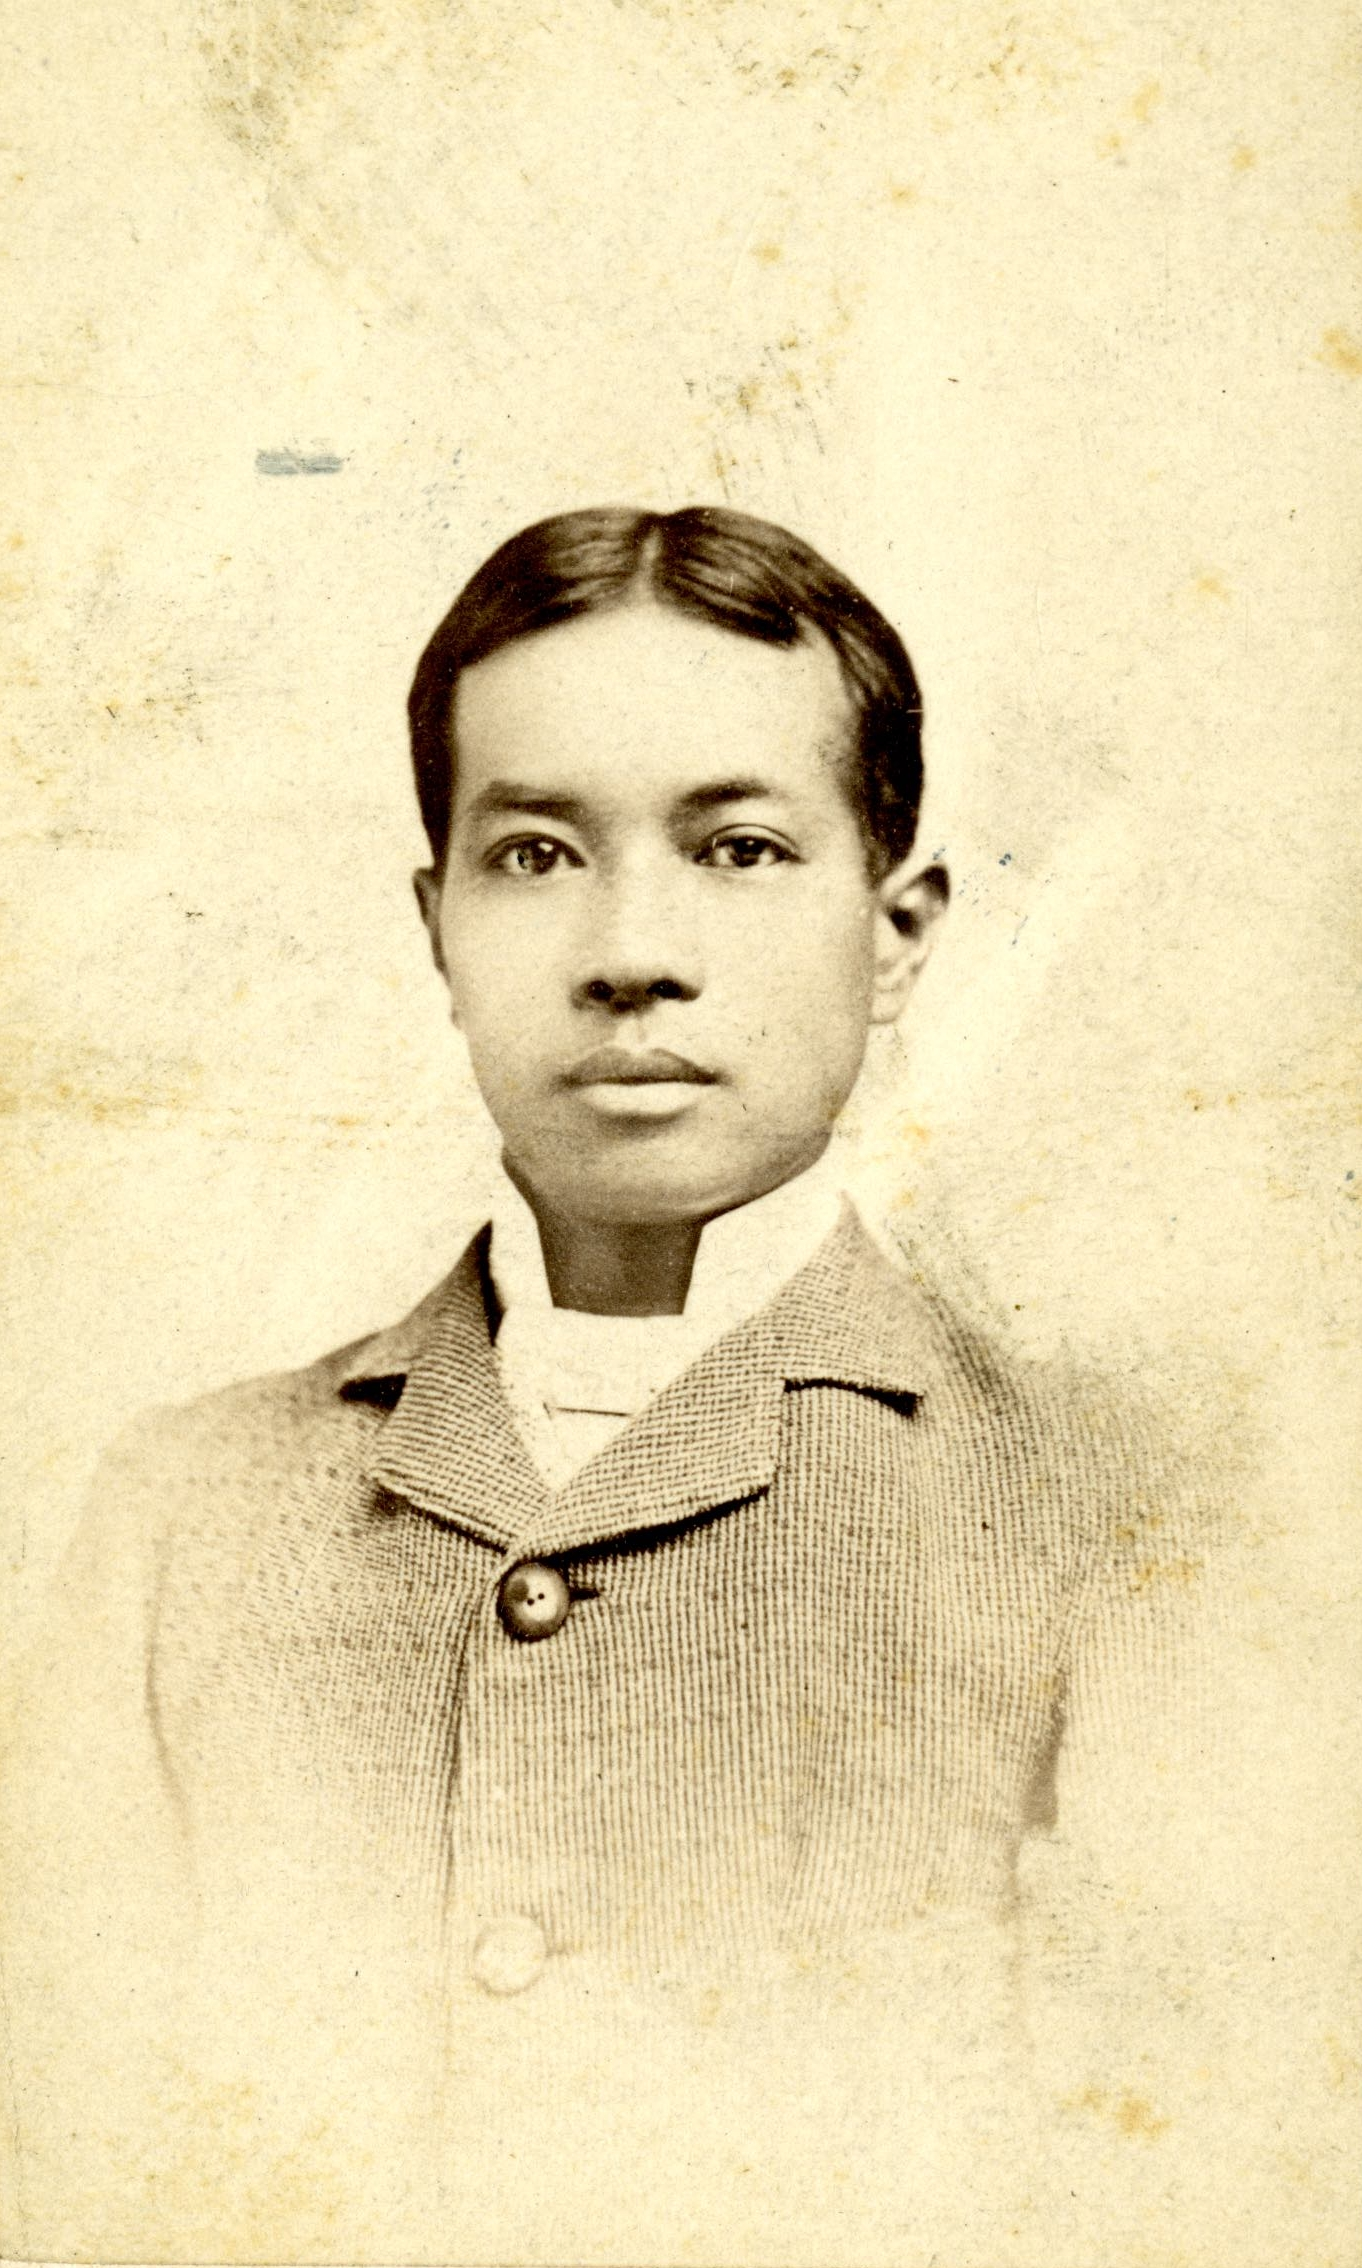 Tyng Se Chung, ca. 1872. 2-2-40. Thomas E. LaFargue Papers, 1873-1946, courtesy Manuscripts, Archives, and Special Collections (MASC), Washington State University Libraries.